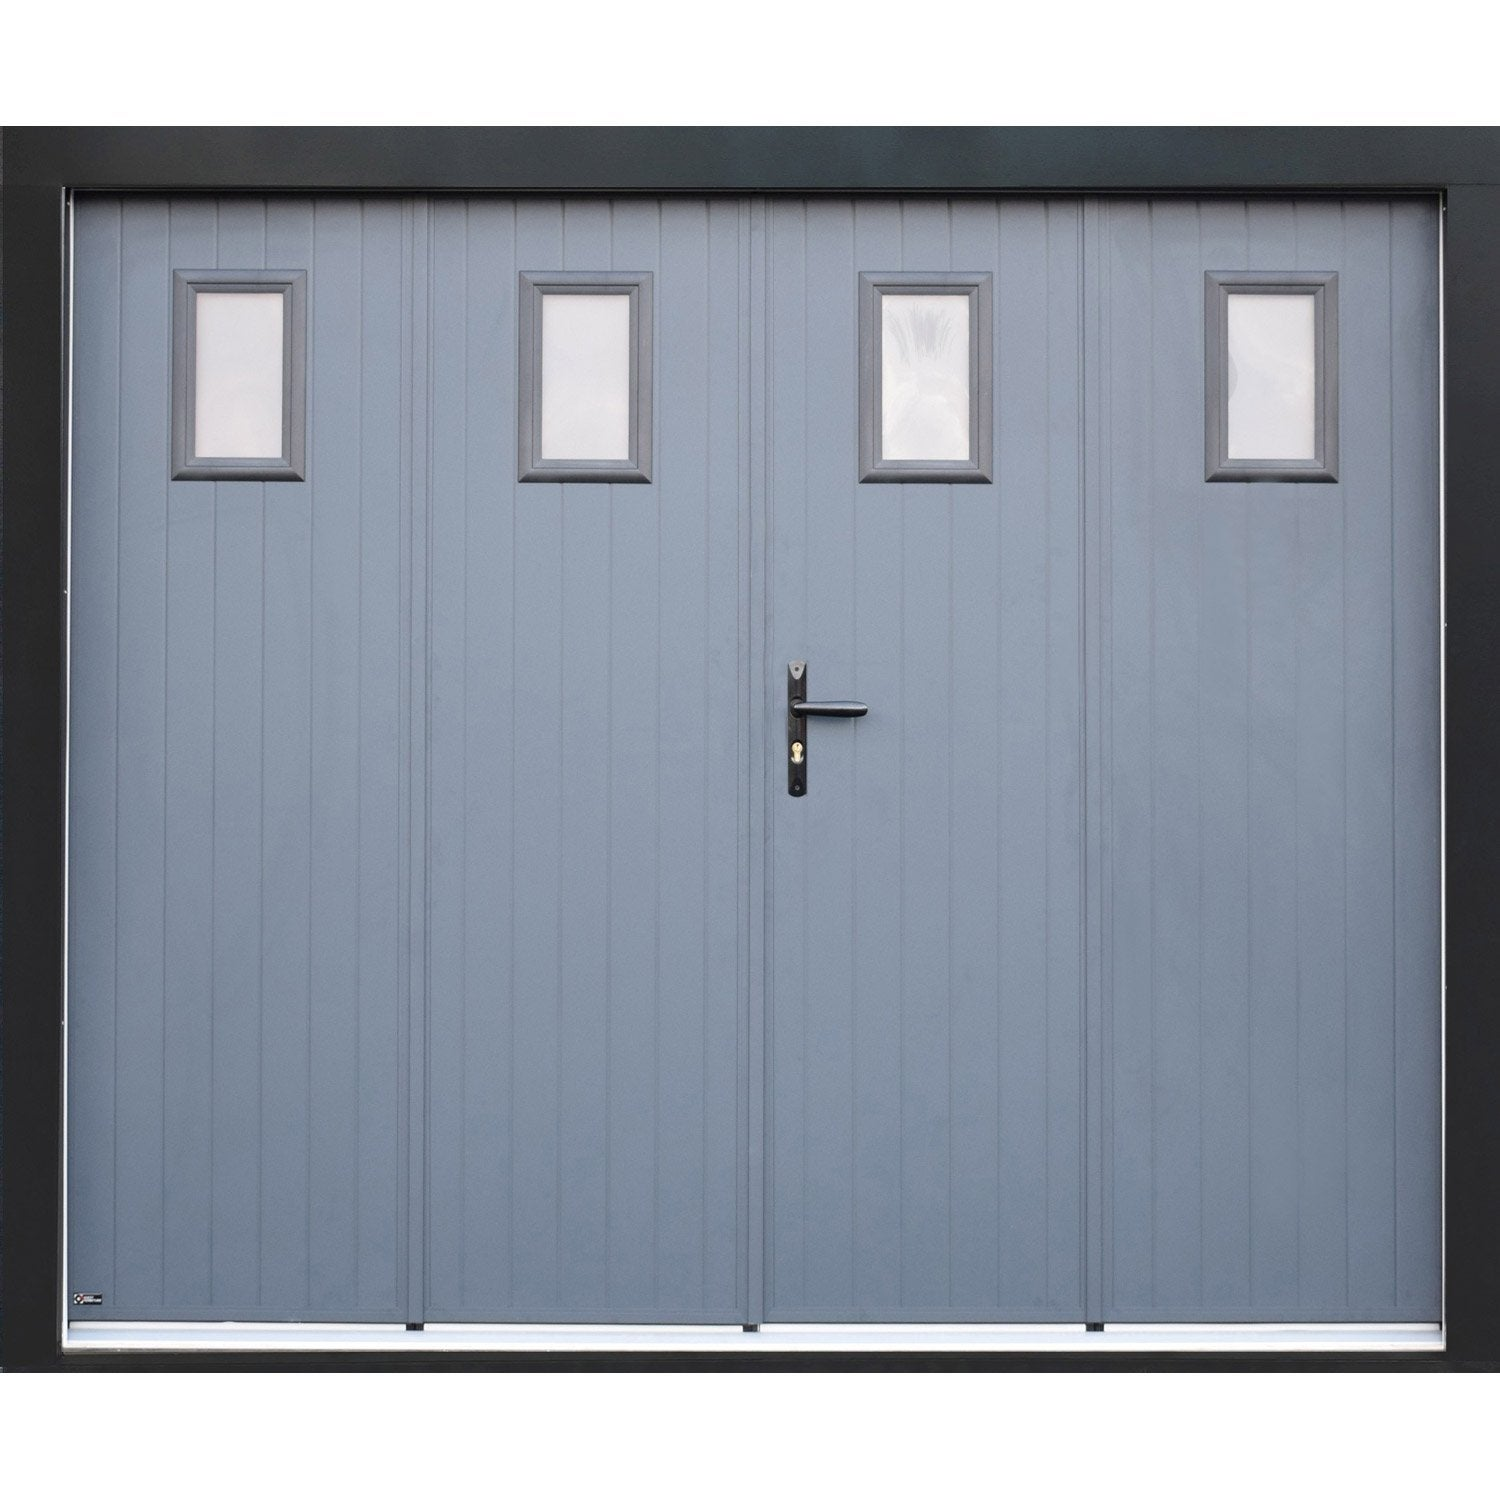 Porte de garage pliante manuelle artens essentiel 200 x for Porte de garage en promotion